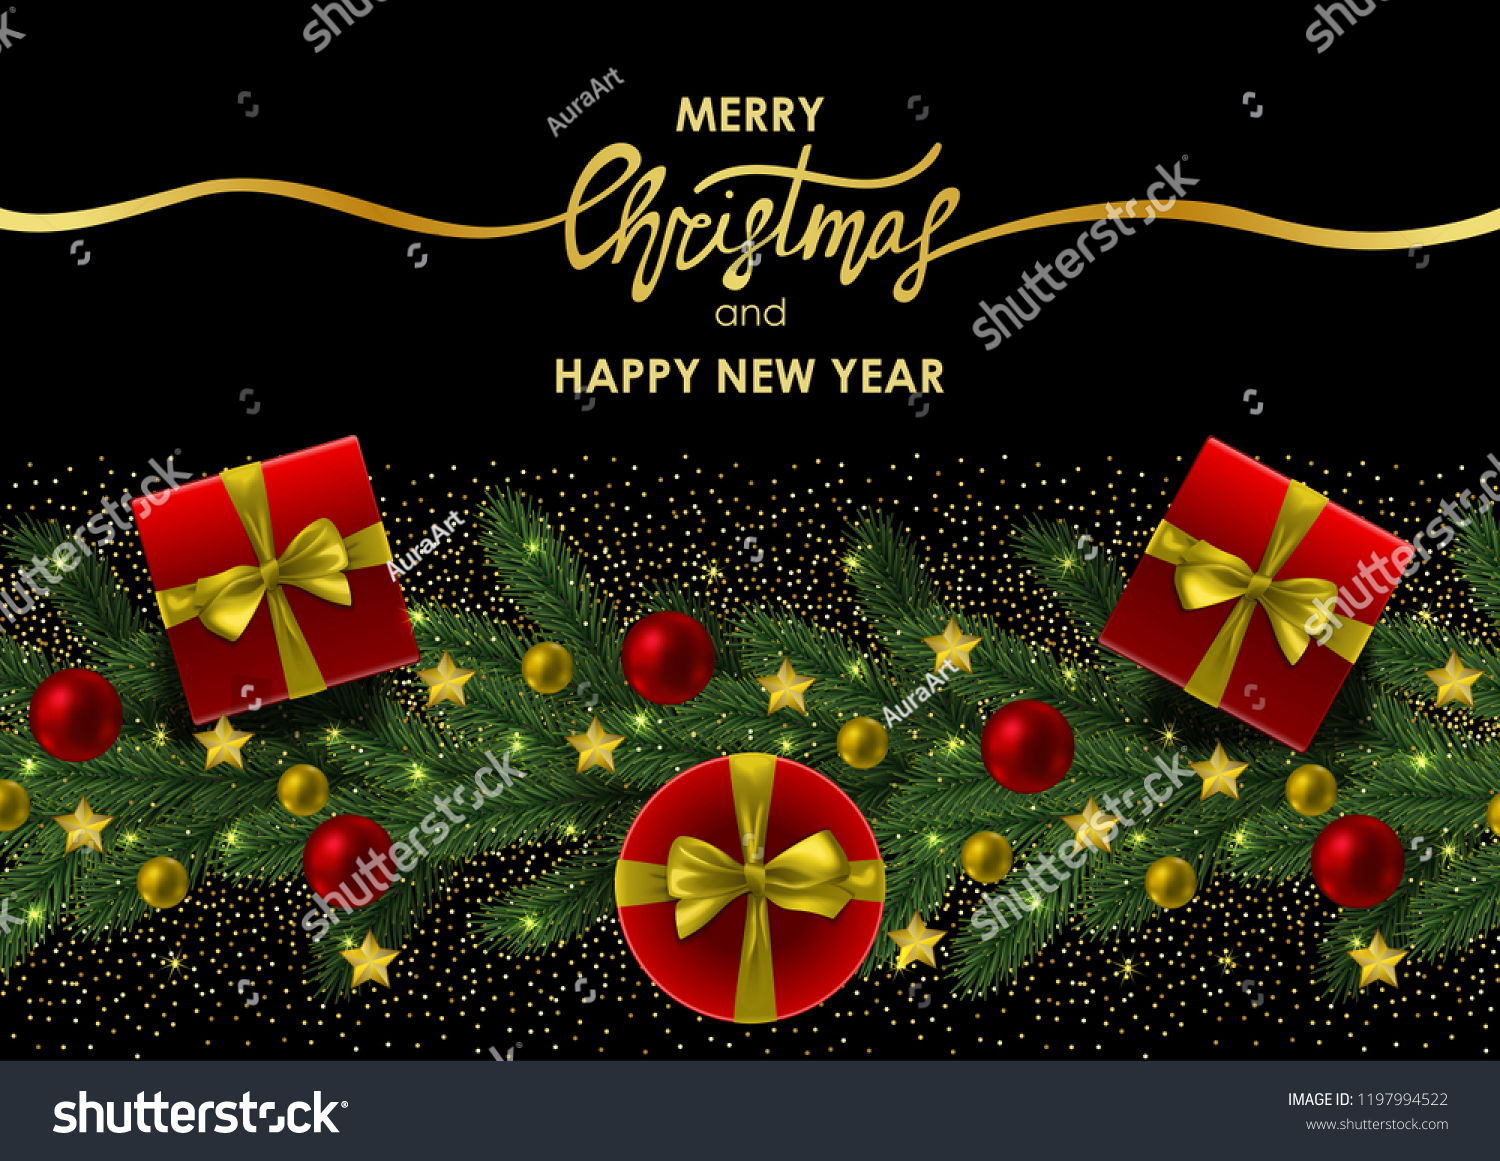 merry christmas and happy new year invitation card with gold lettering on black background a4